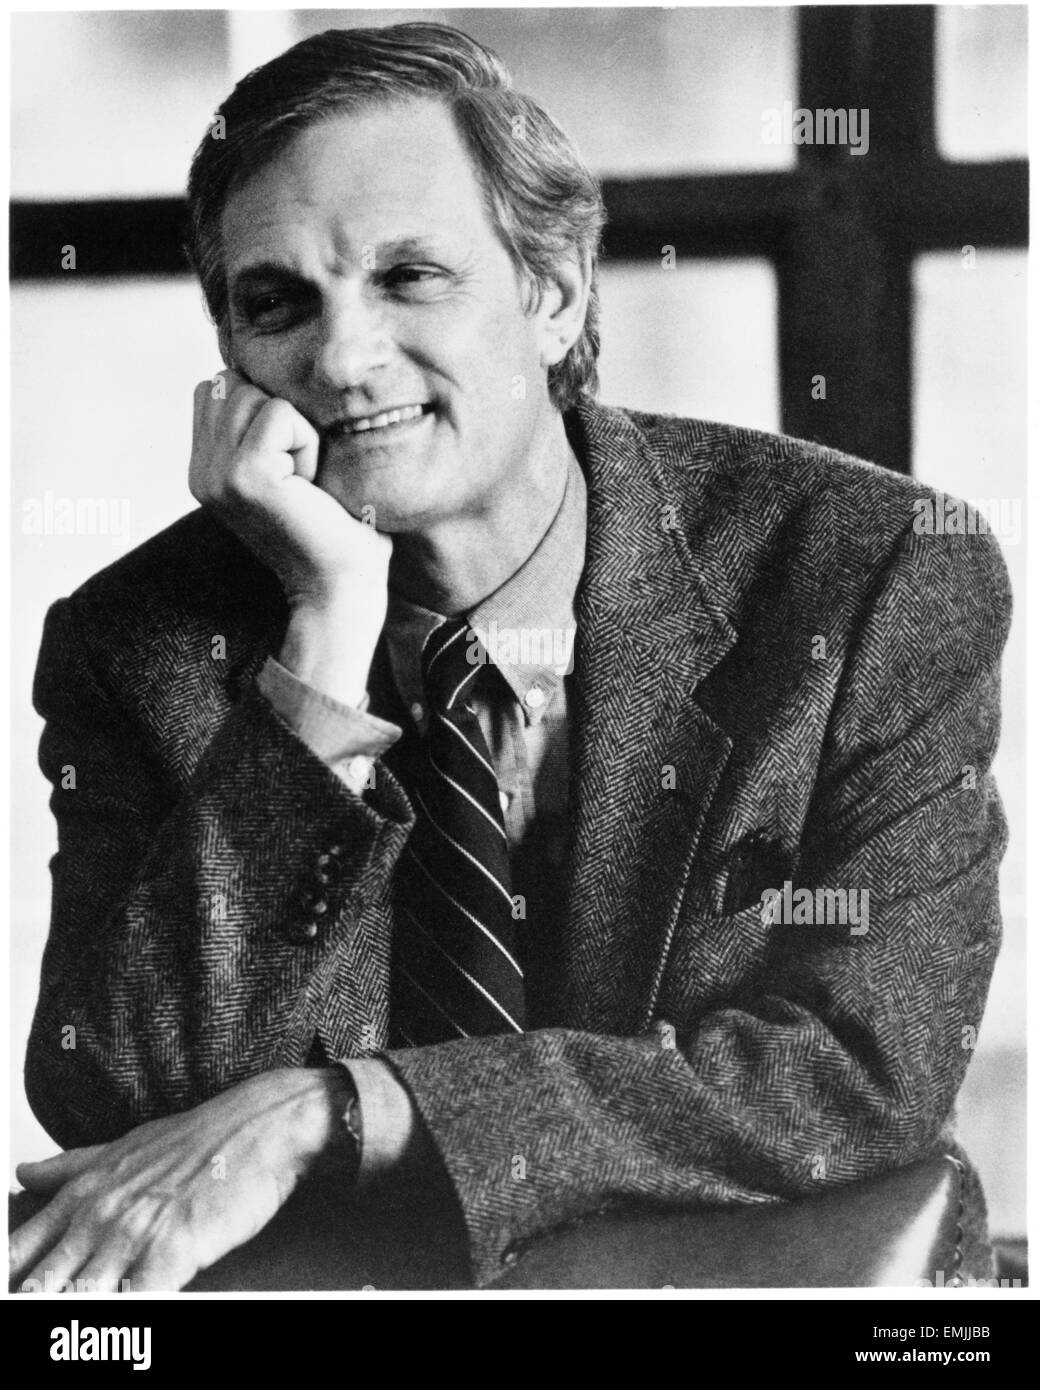 "Alan Alda, on-set of the Film ""Whispers in the Dark"", 1992 - Stock Image"